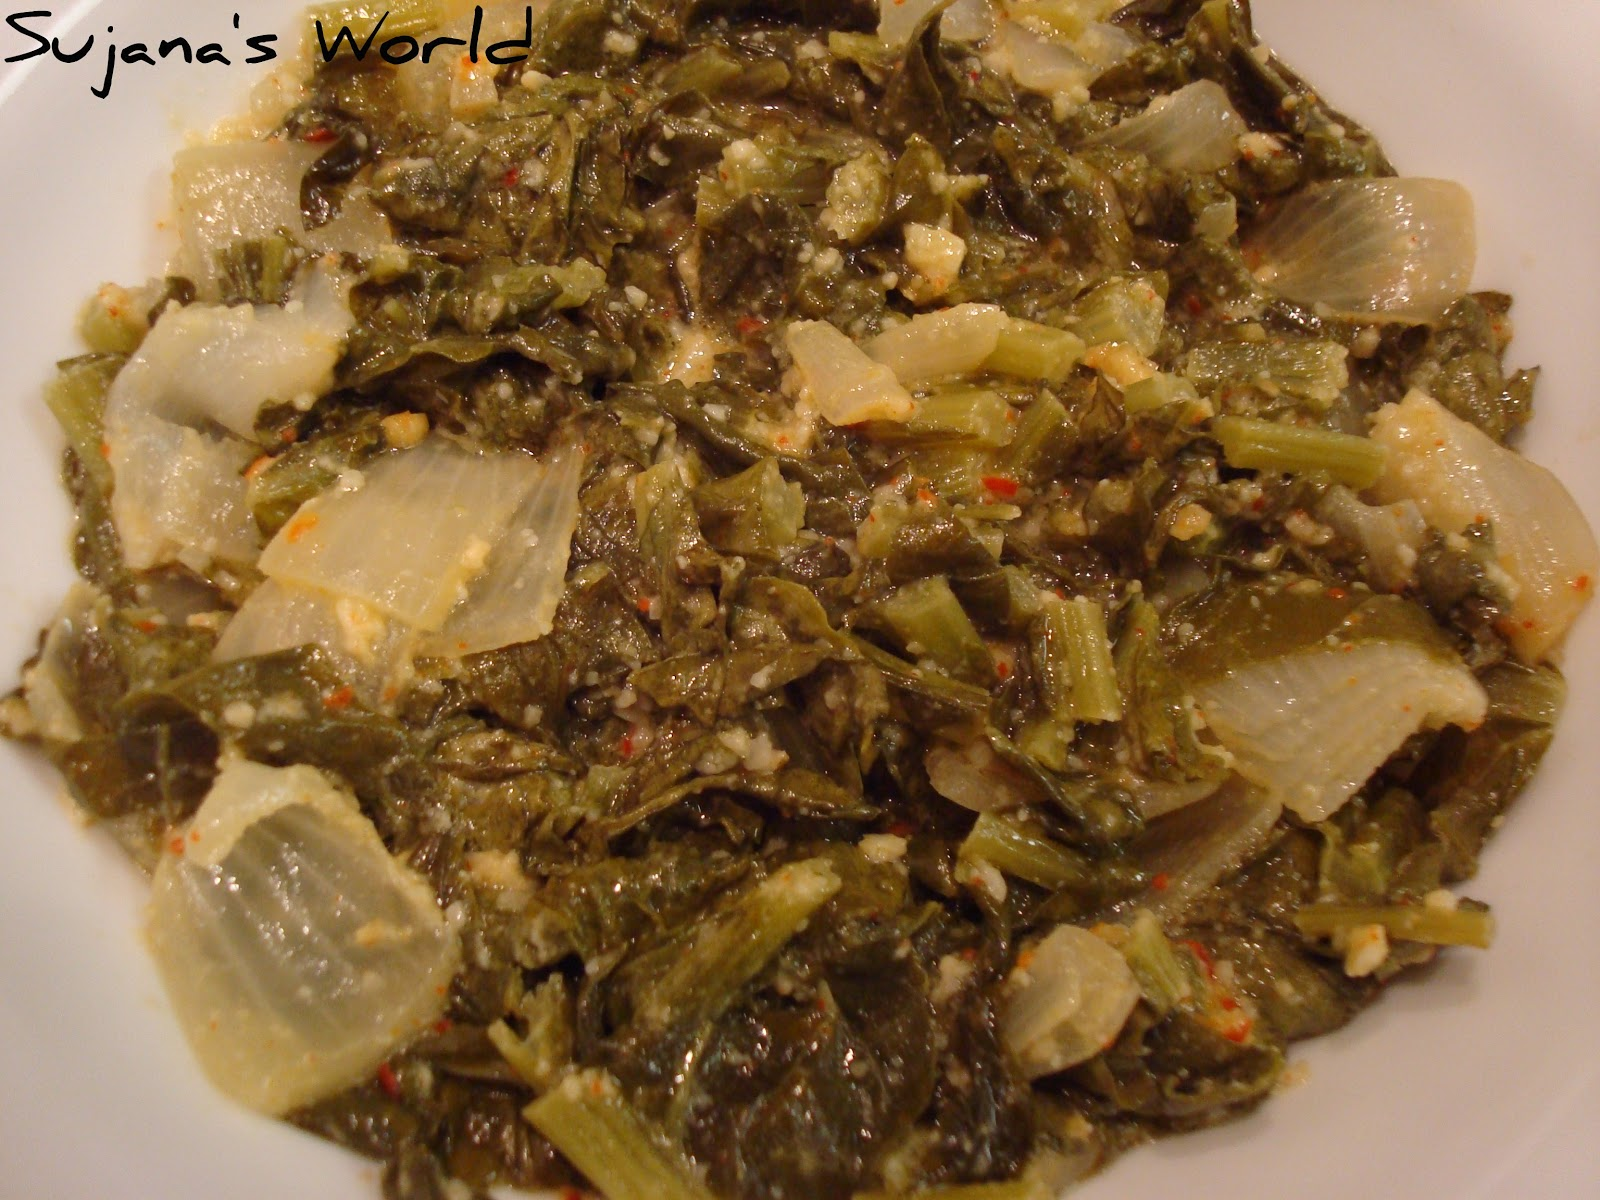 Sujana's World: Baked Turnip Greens